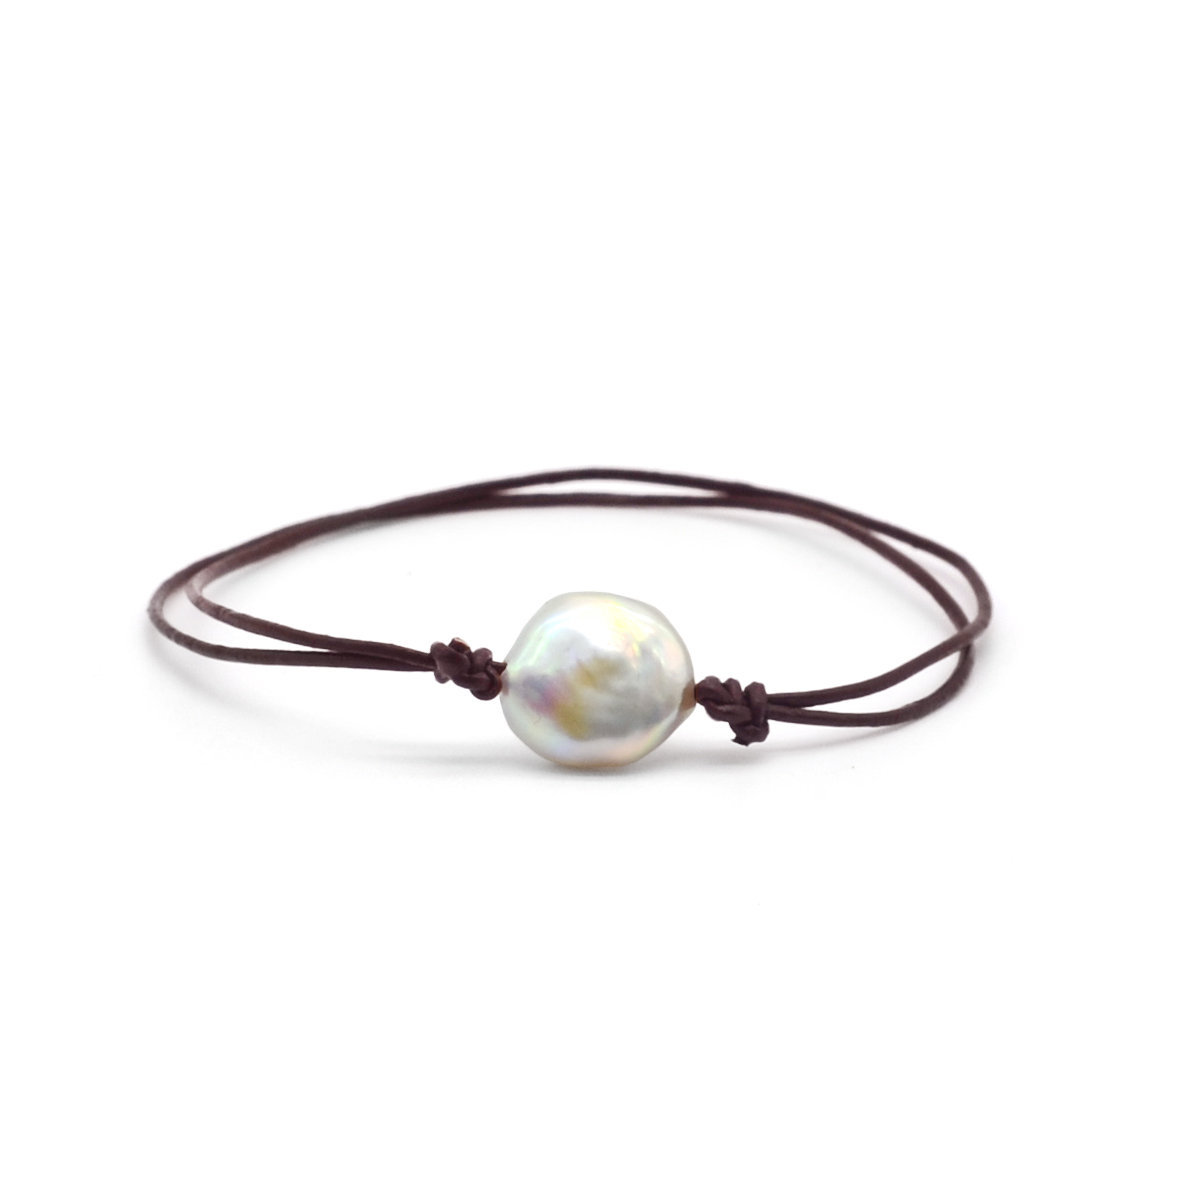 12-13mm Coin shape Cultured fresh water pearl with leather bracelet